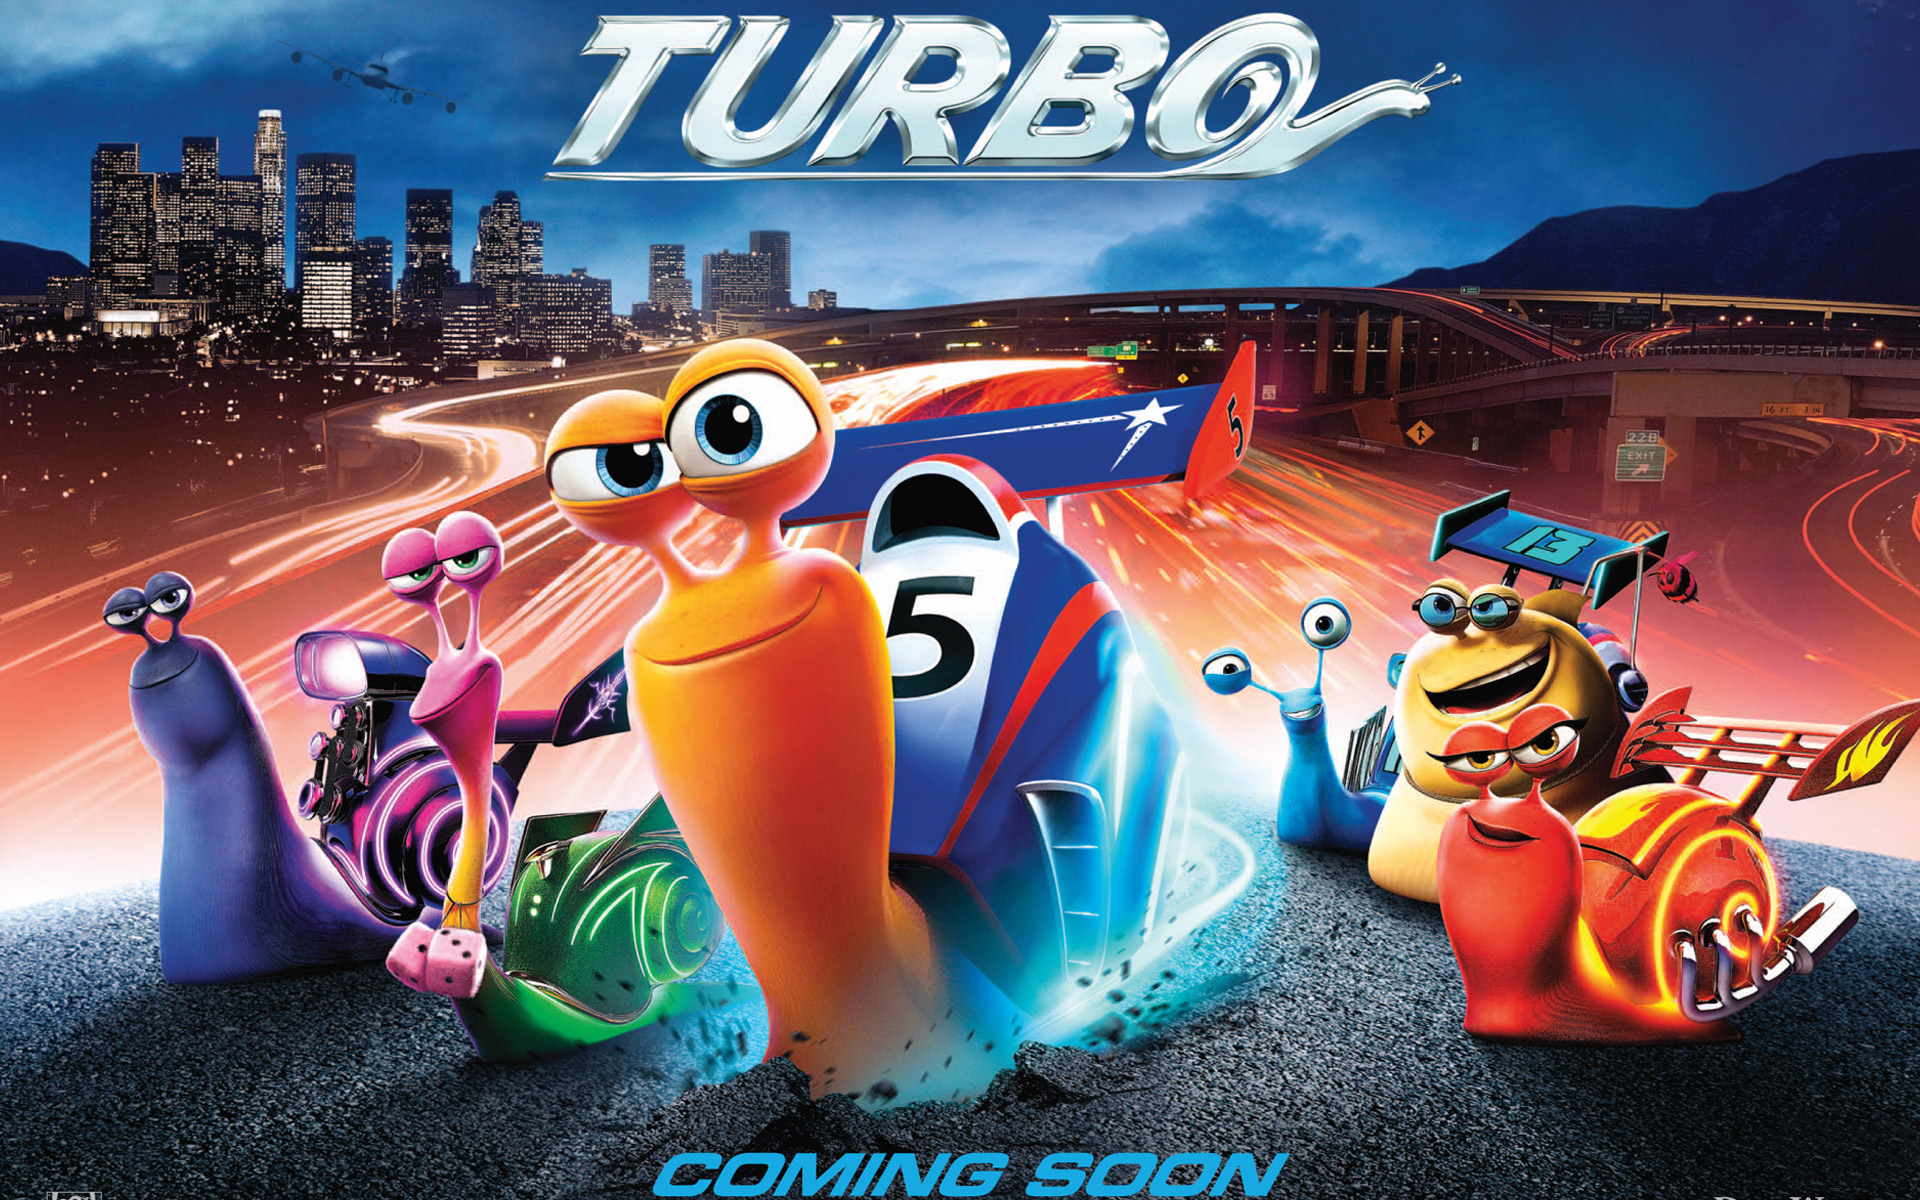 Turbo Movie 2013 Wallpaper